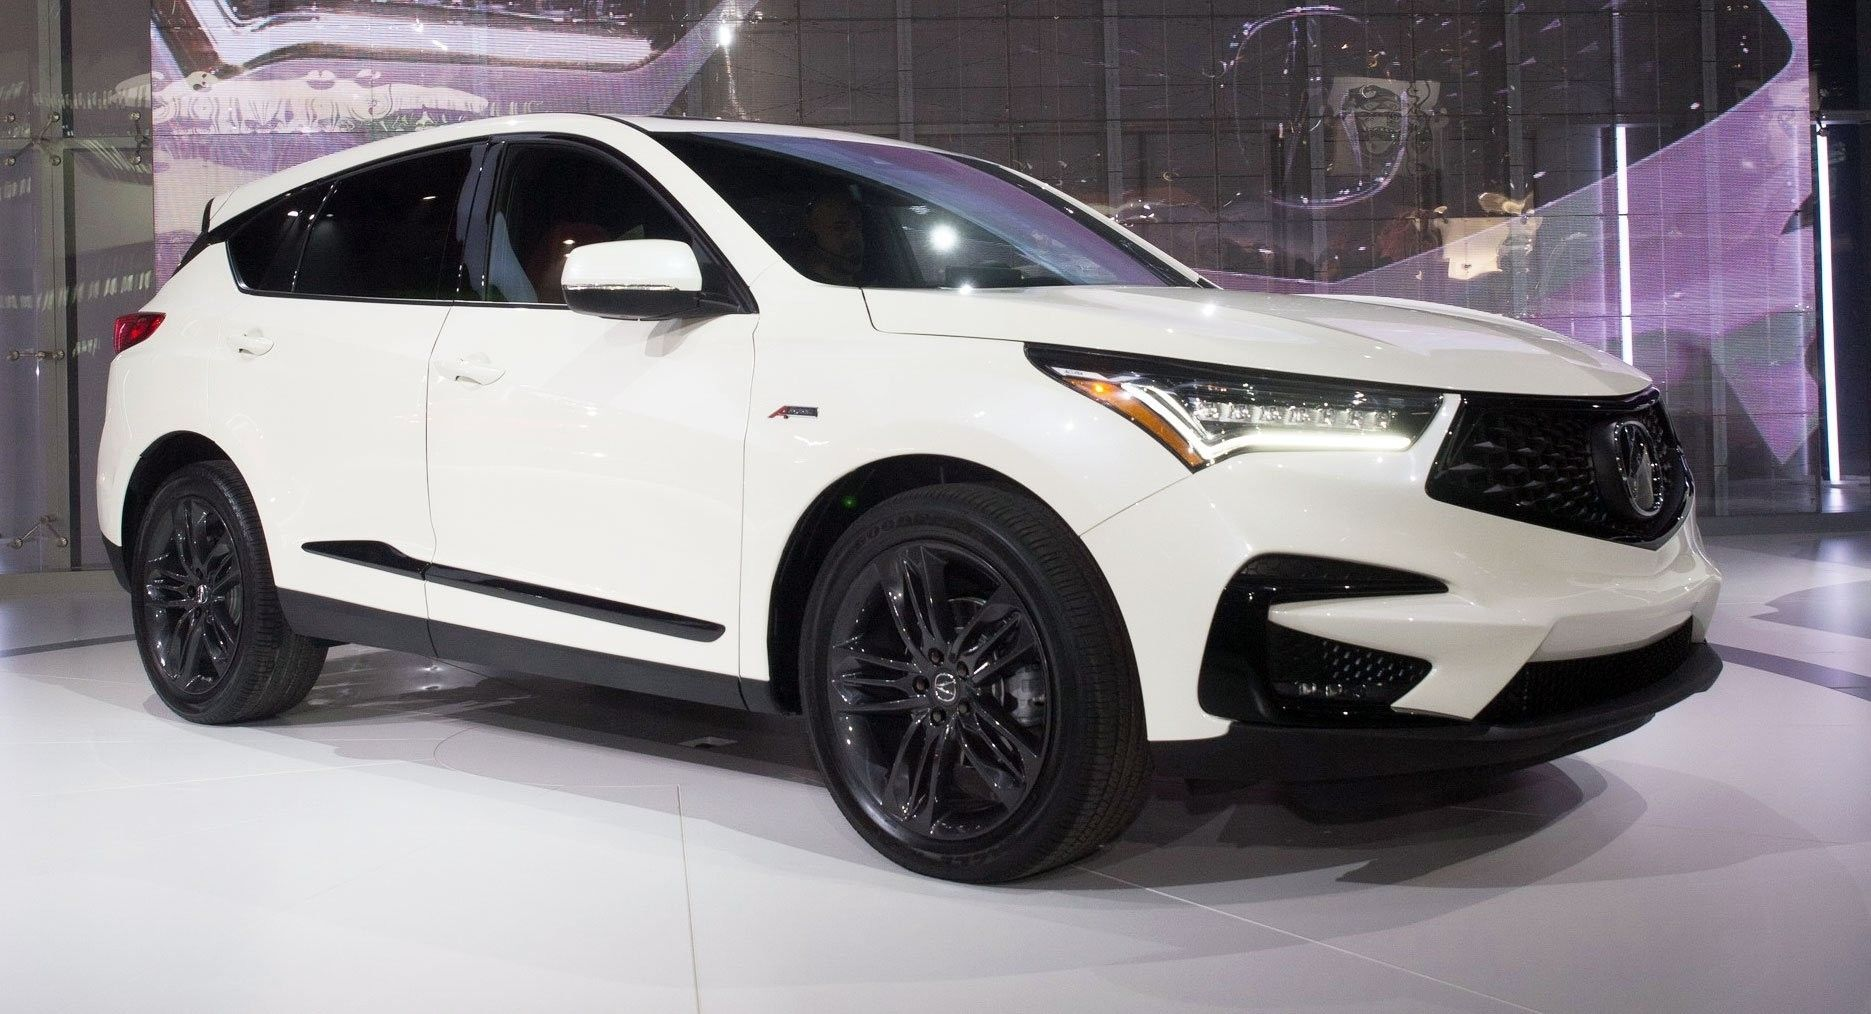 2019 Acura Mdx Lease New Review Acura Mdx Acura Acura Rdx